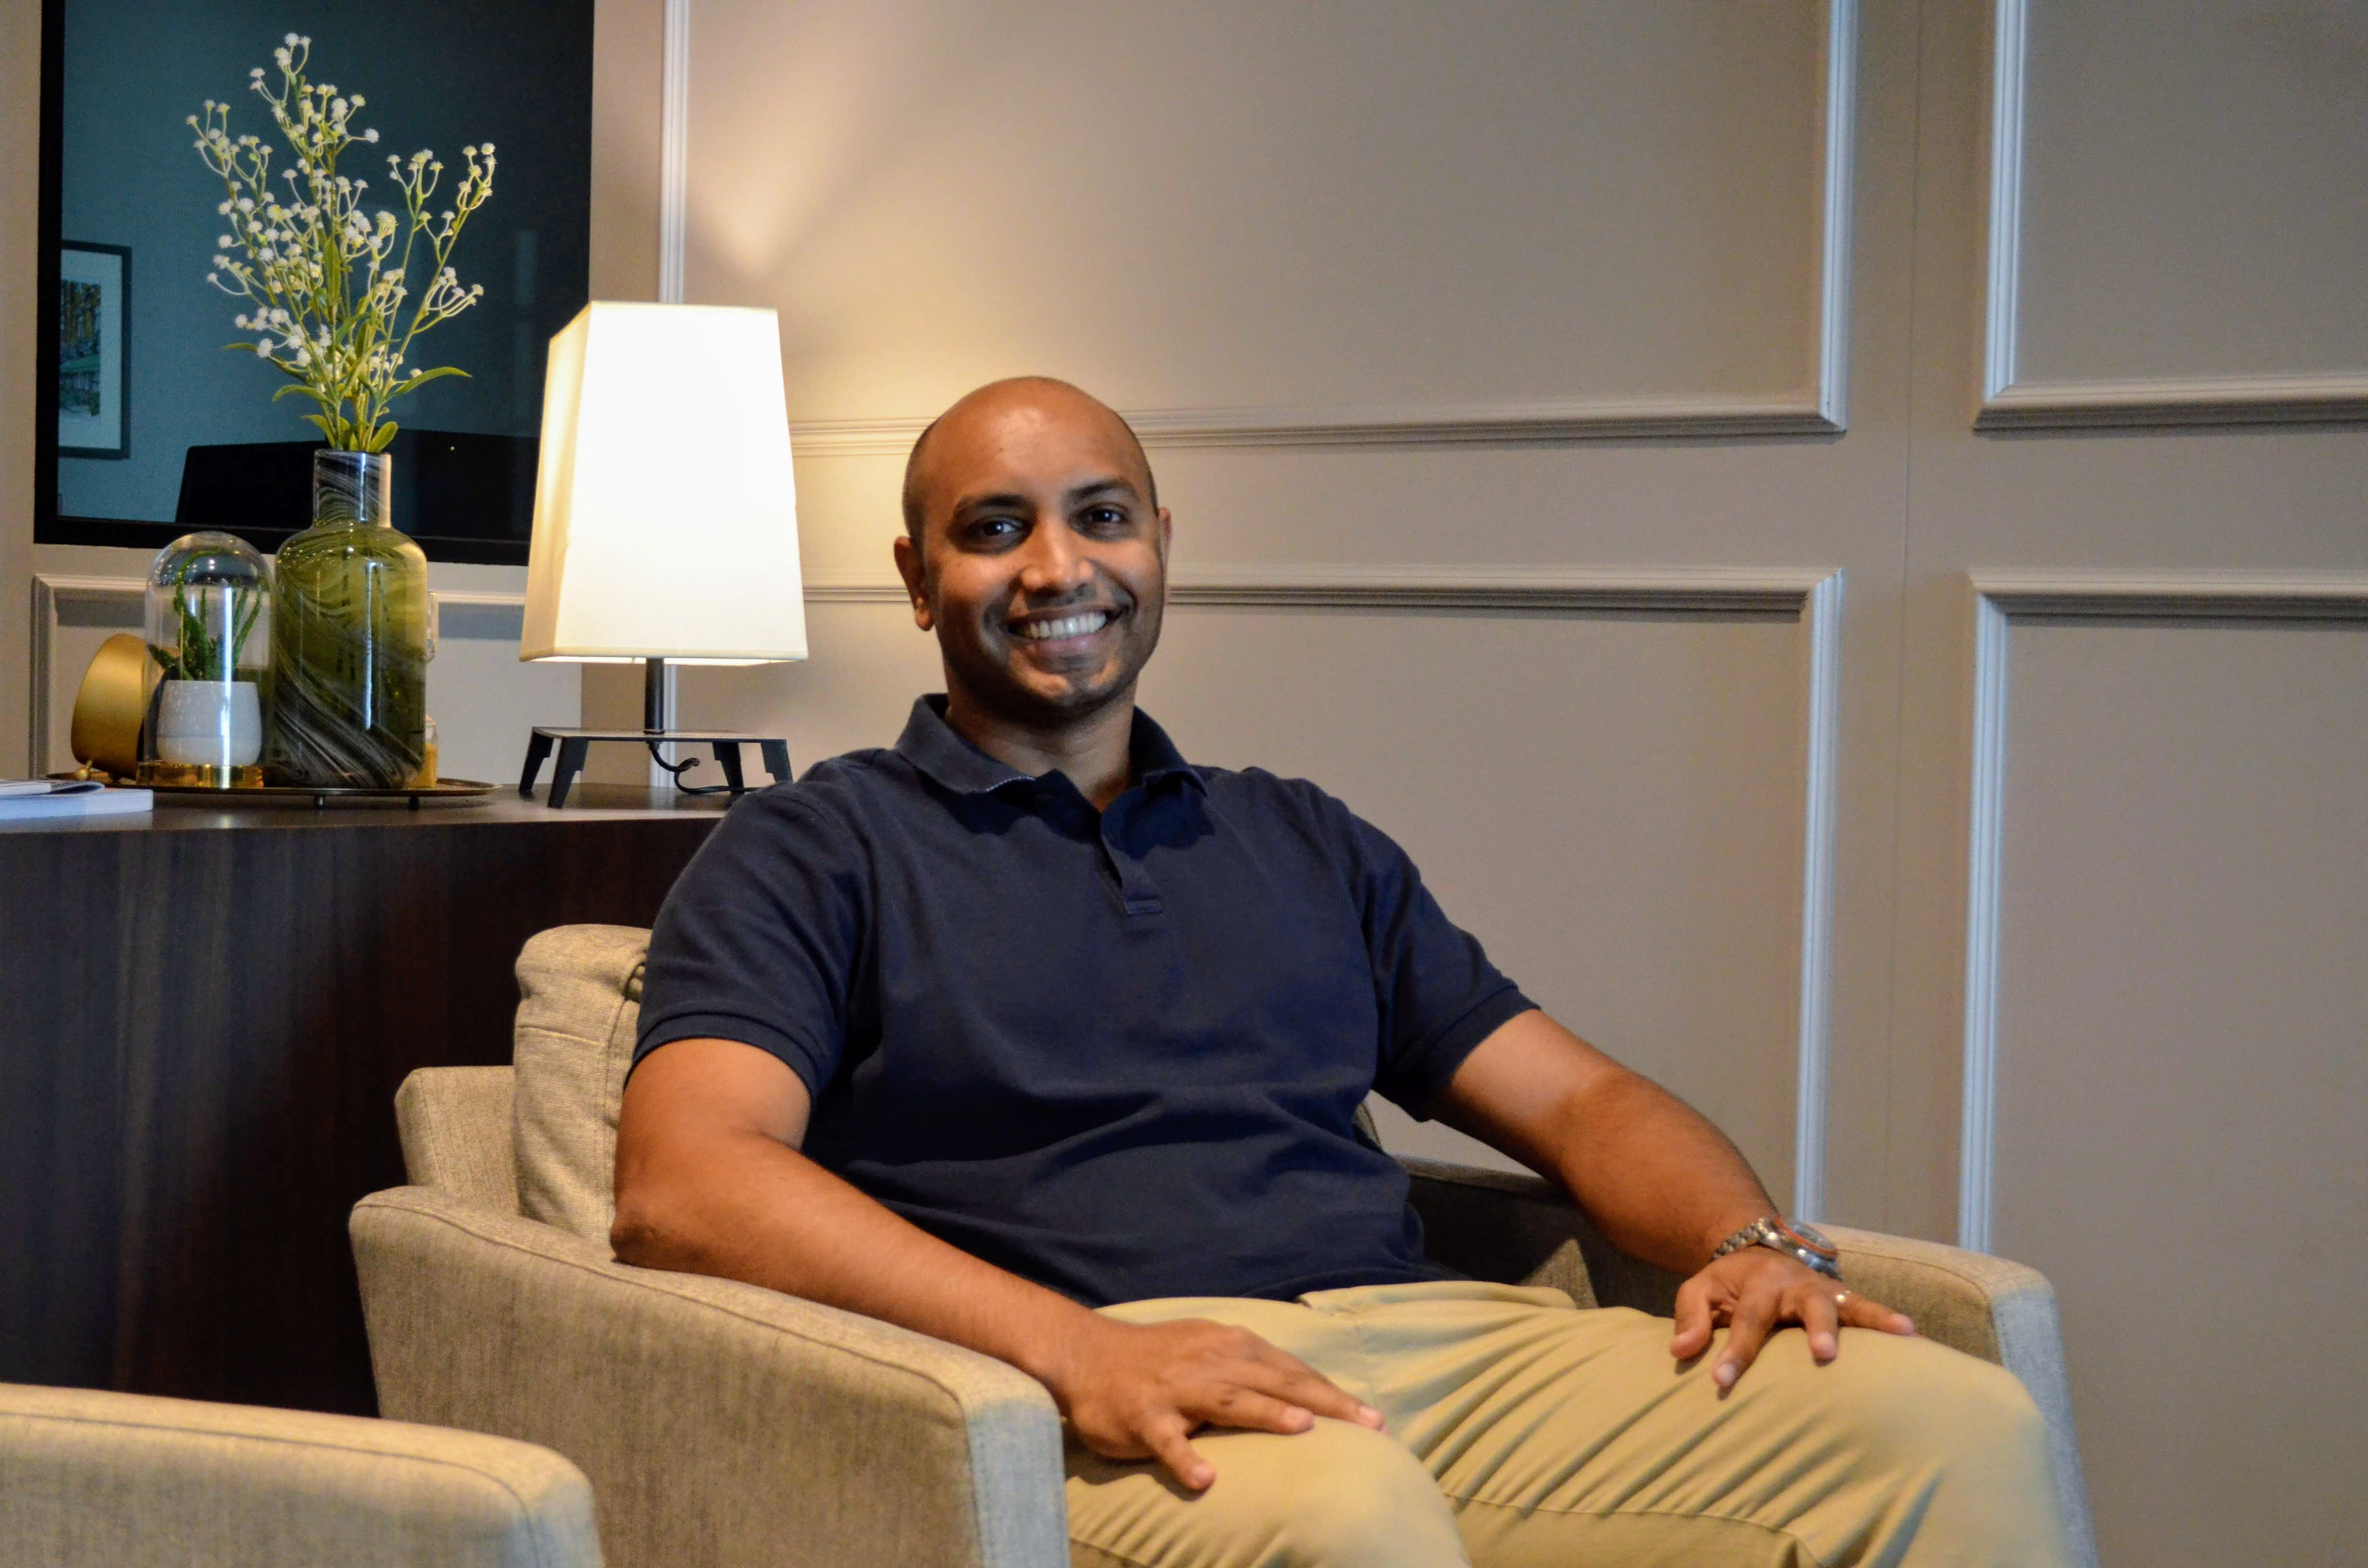 Stemming from the Sanskrit word for rules and principles, Nium encapsulates the process of rewriting rules to ensure financial freedom, Indian-origin Co-Founder and CEO of Nium Prajit Nanu said. Photo: Connected to India